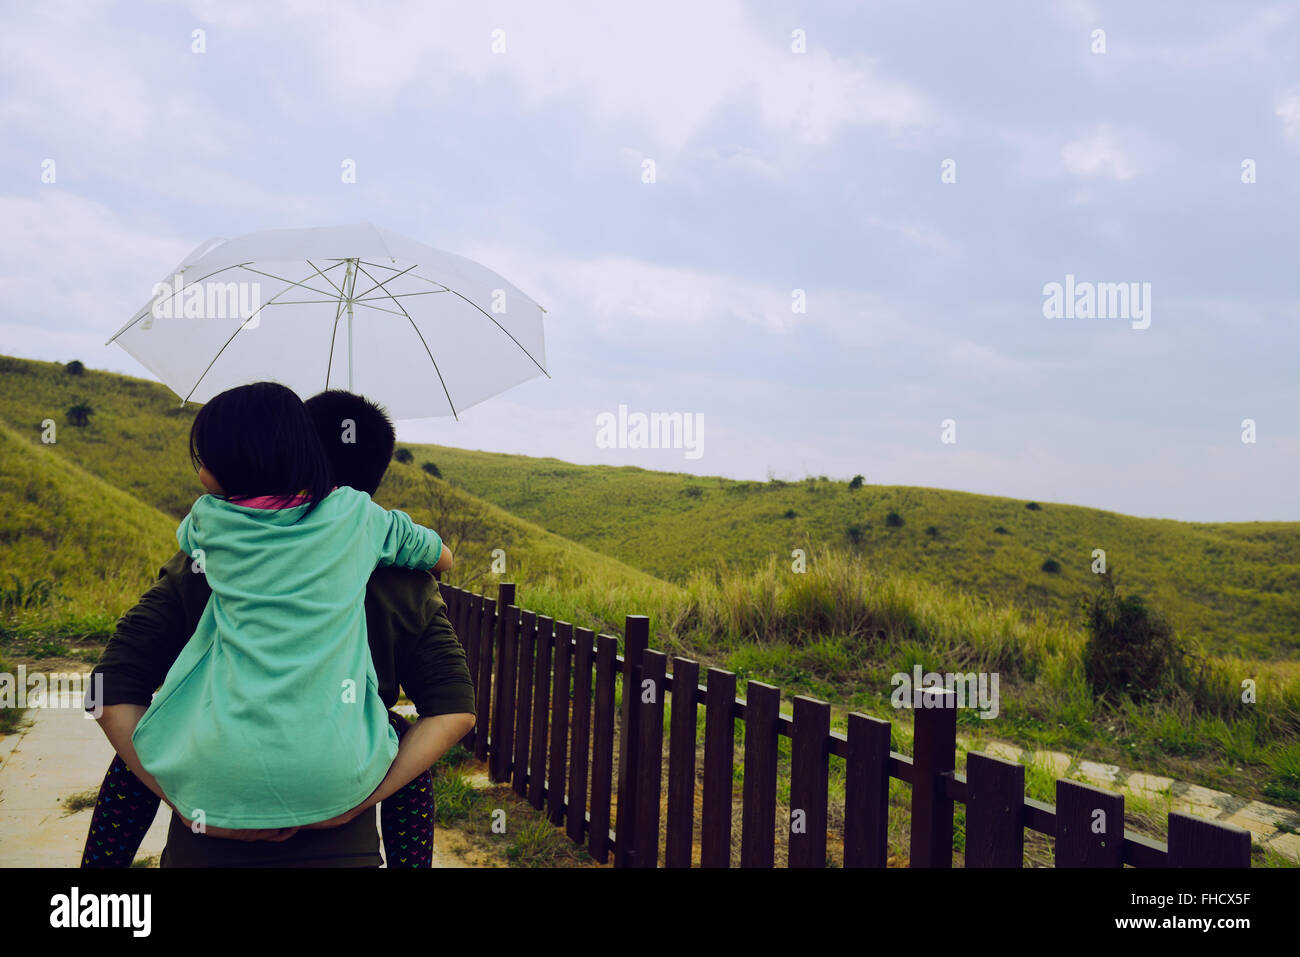 Daughter on Father's Back take umbrella ,Girl on father's back take umbrella,Father giving young daughter - Stock Image